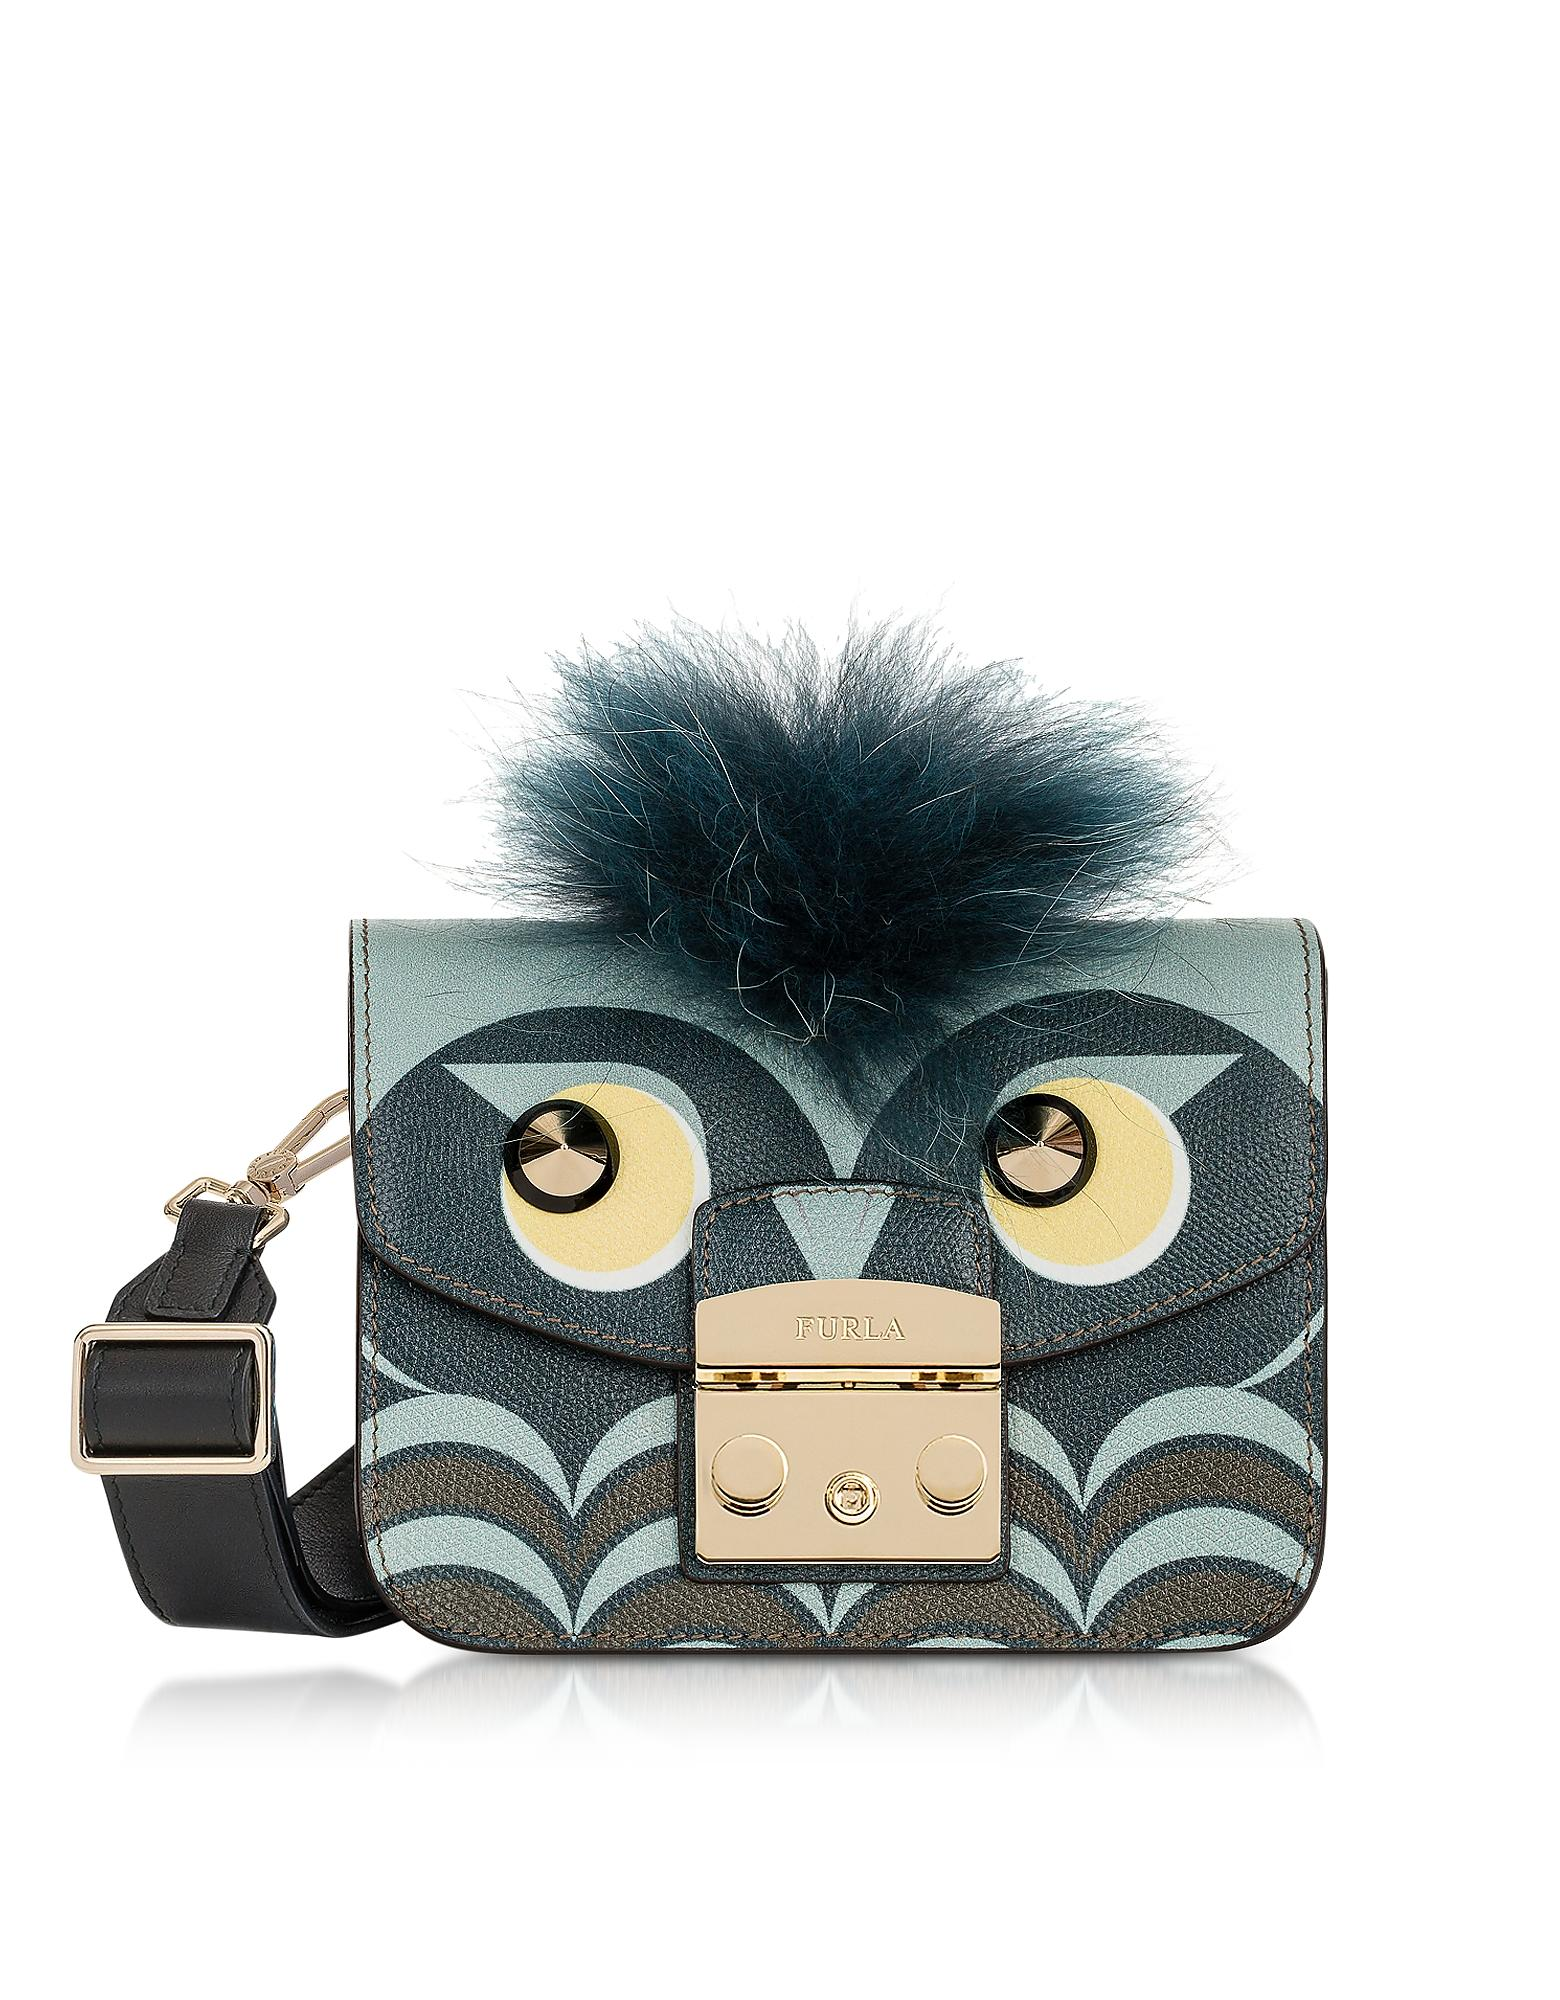 73b73dbb1a Furla Metropolis Jungle Owl Mini Crossbody Bag